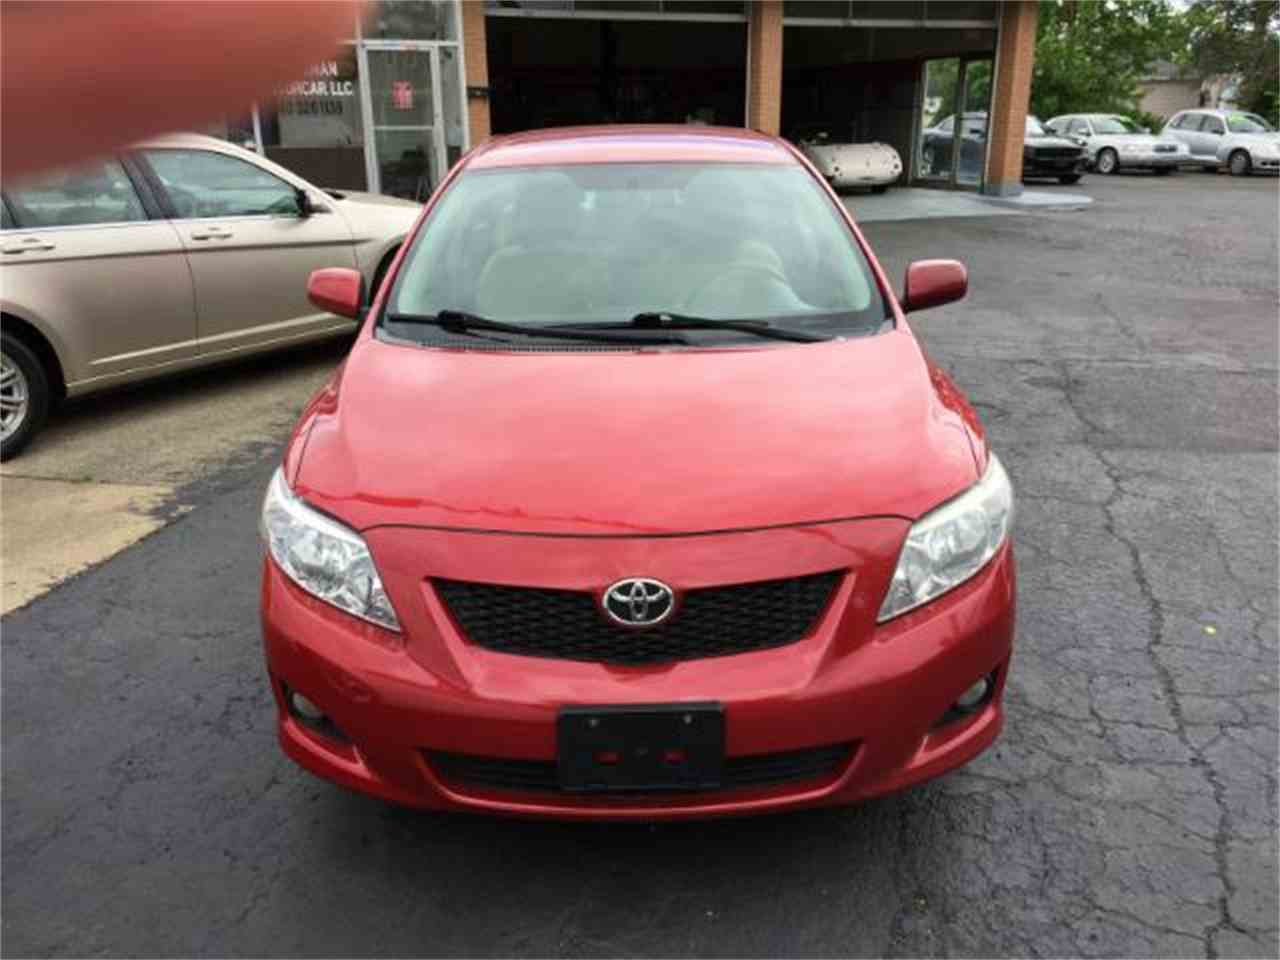 Large Picture of '09 Corolla located in Ohio - $5,995.00 - M78N